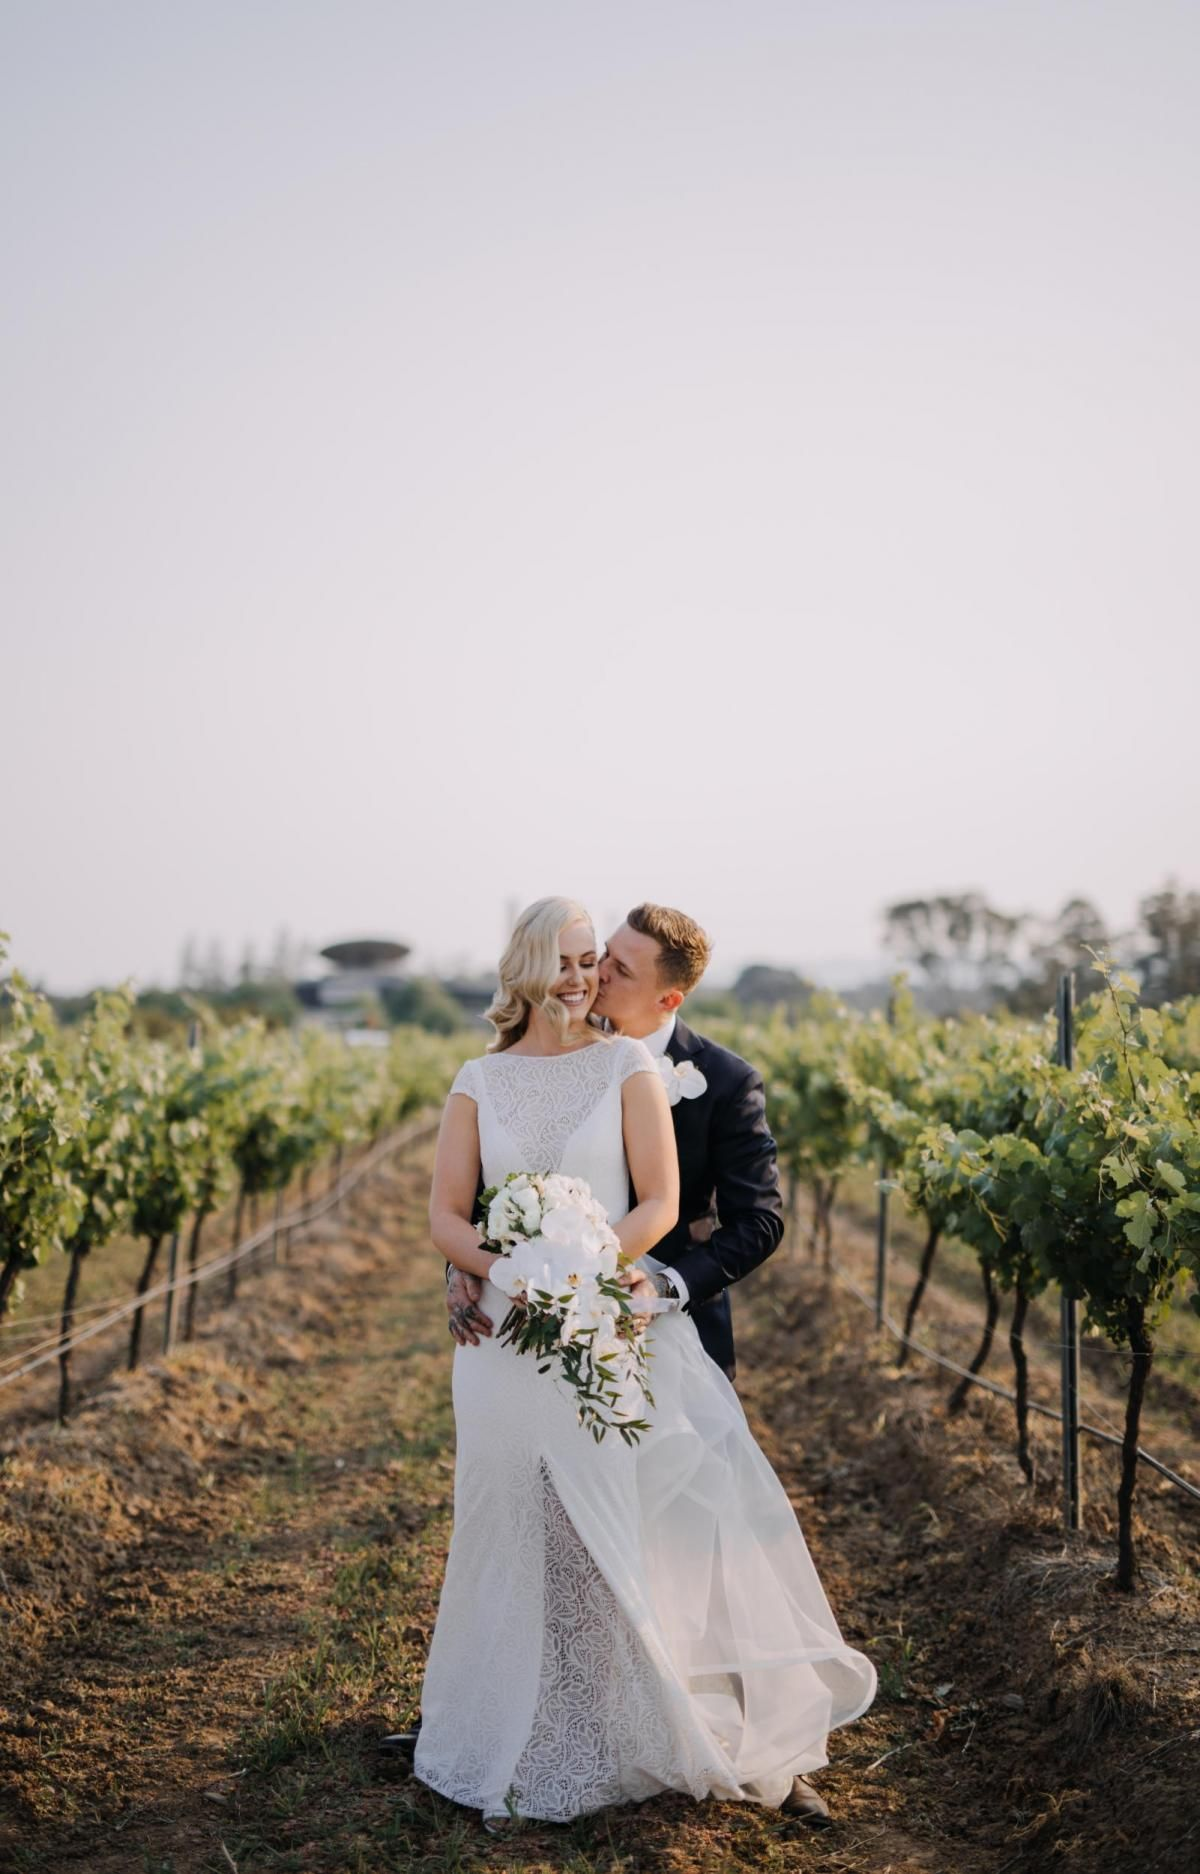 Real bride Madison wore the Wild Hearts Jemma wedding dress by Karen Willis Holmes.